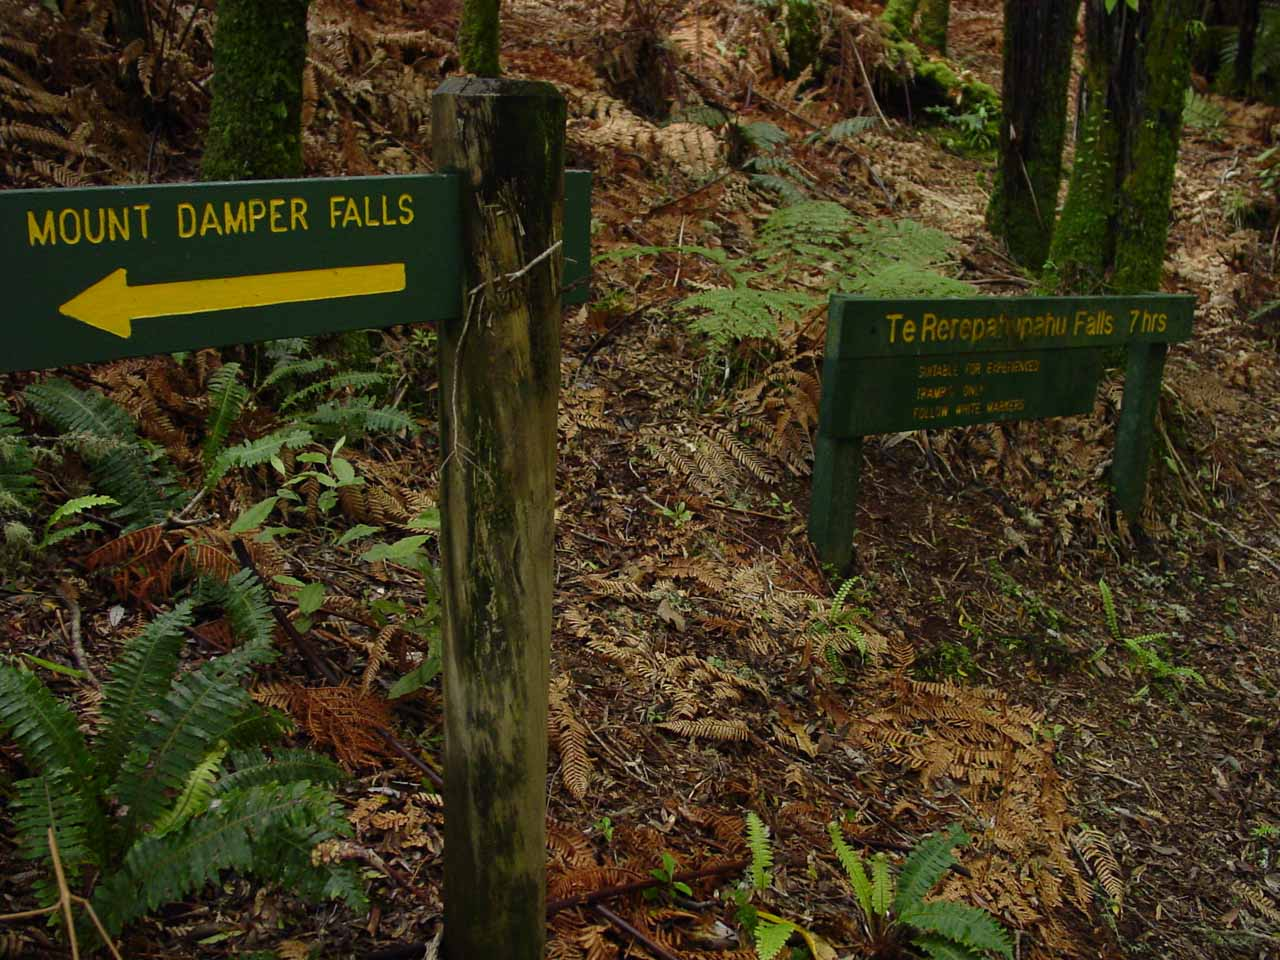 The signposted junction of the Mt Damper Falls Track and the Te Rerepahupahu Falls Track